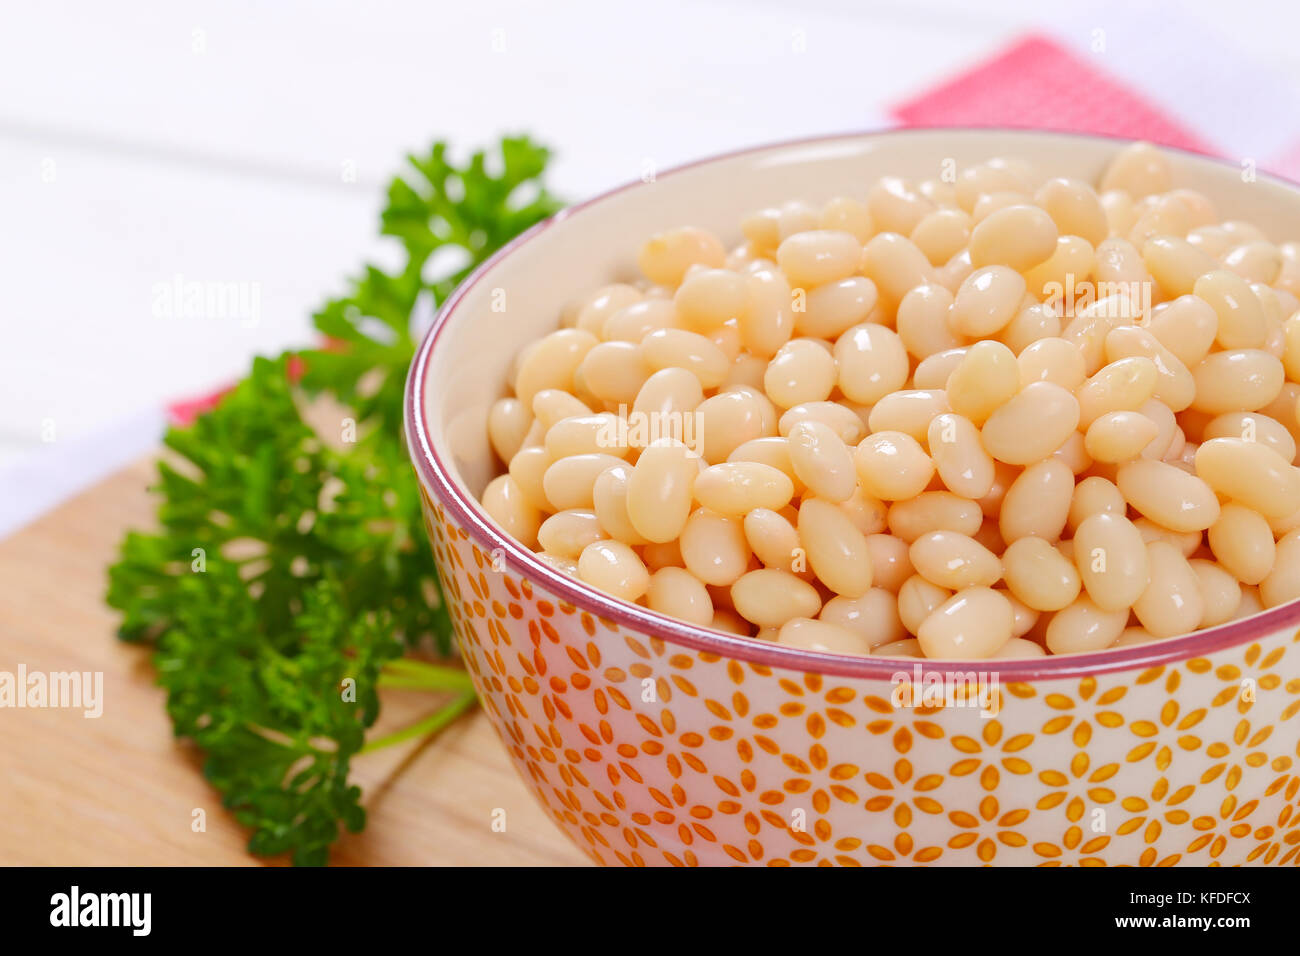 bowl of canned white beans on wooden cutting board - close up - Stock Image